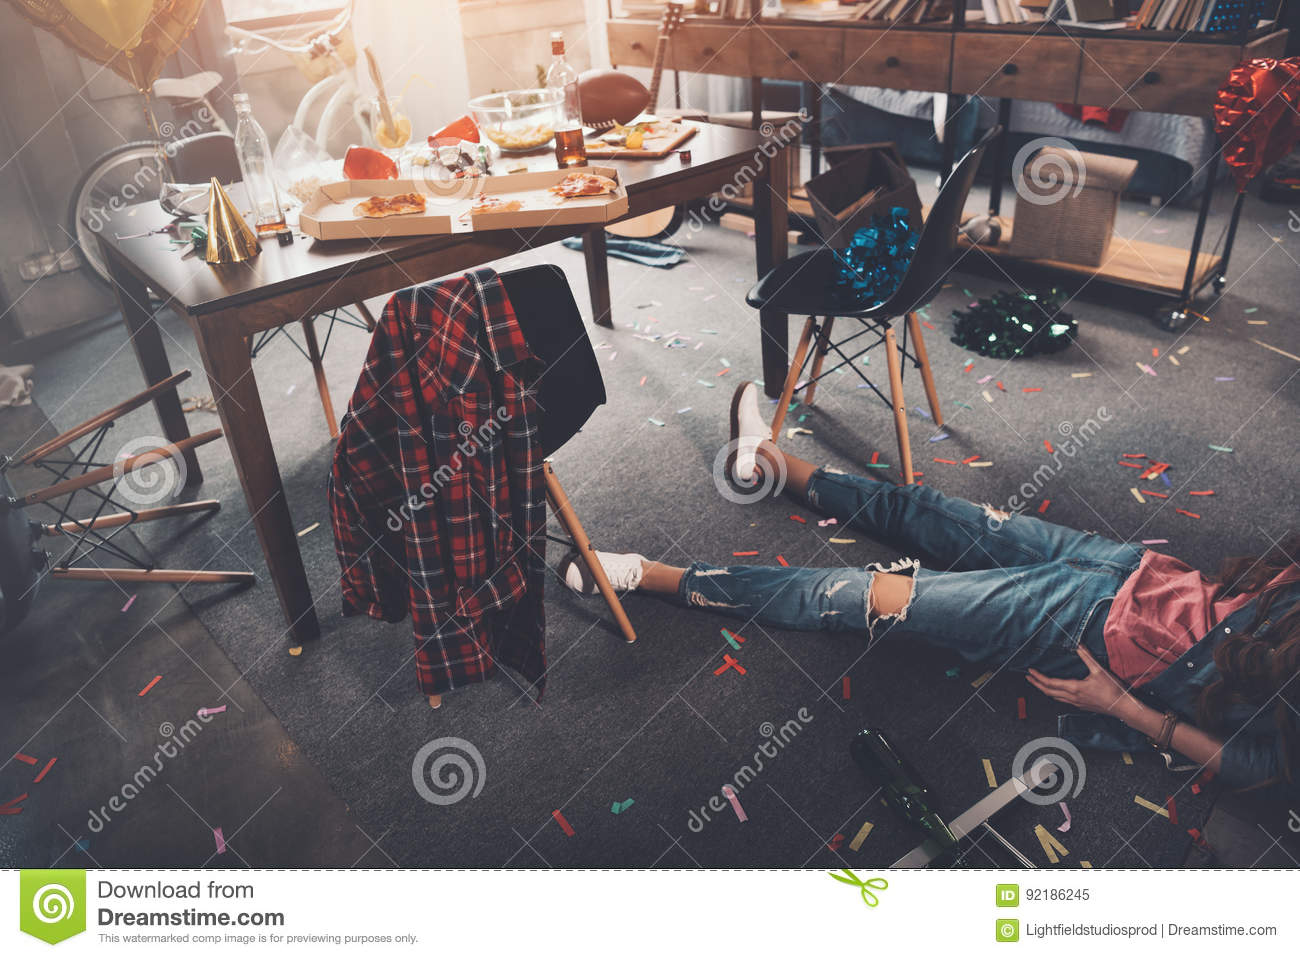 Drunk young woman lying on floor in messy room after party